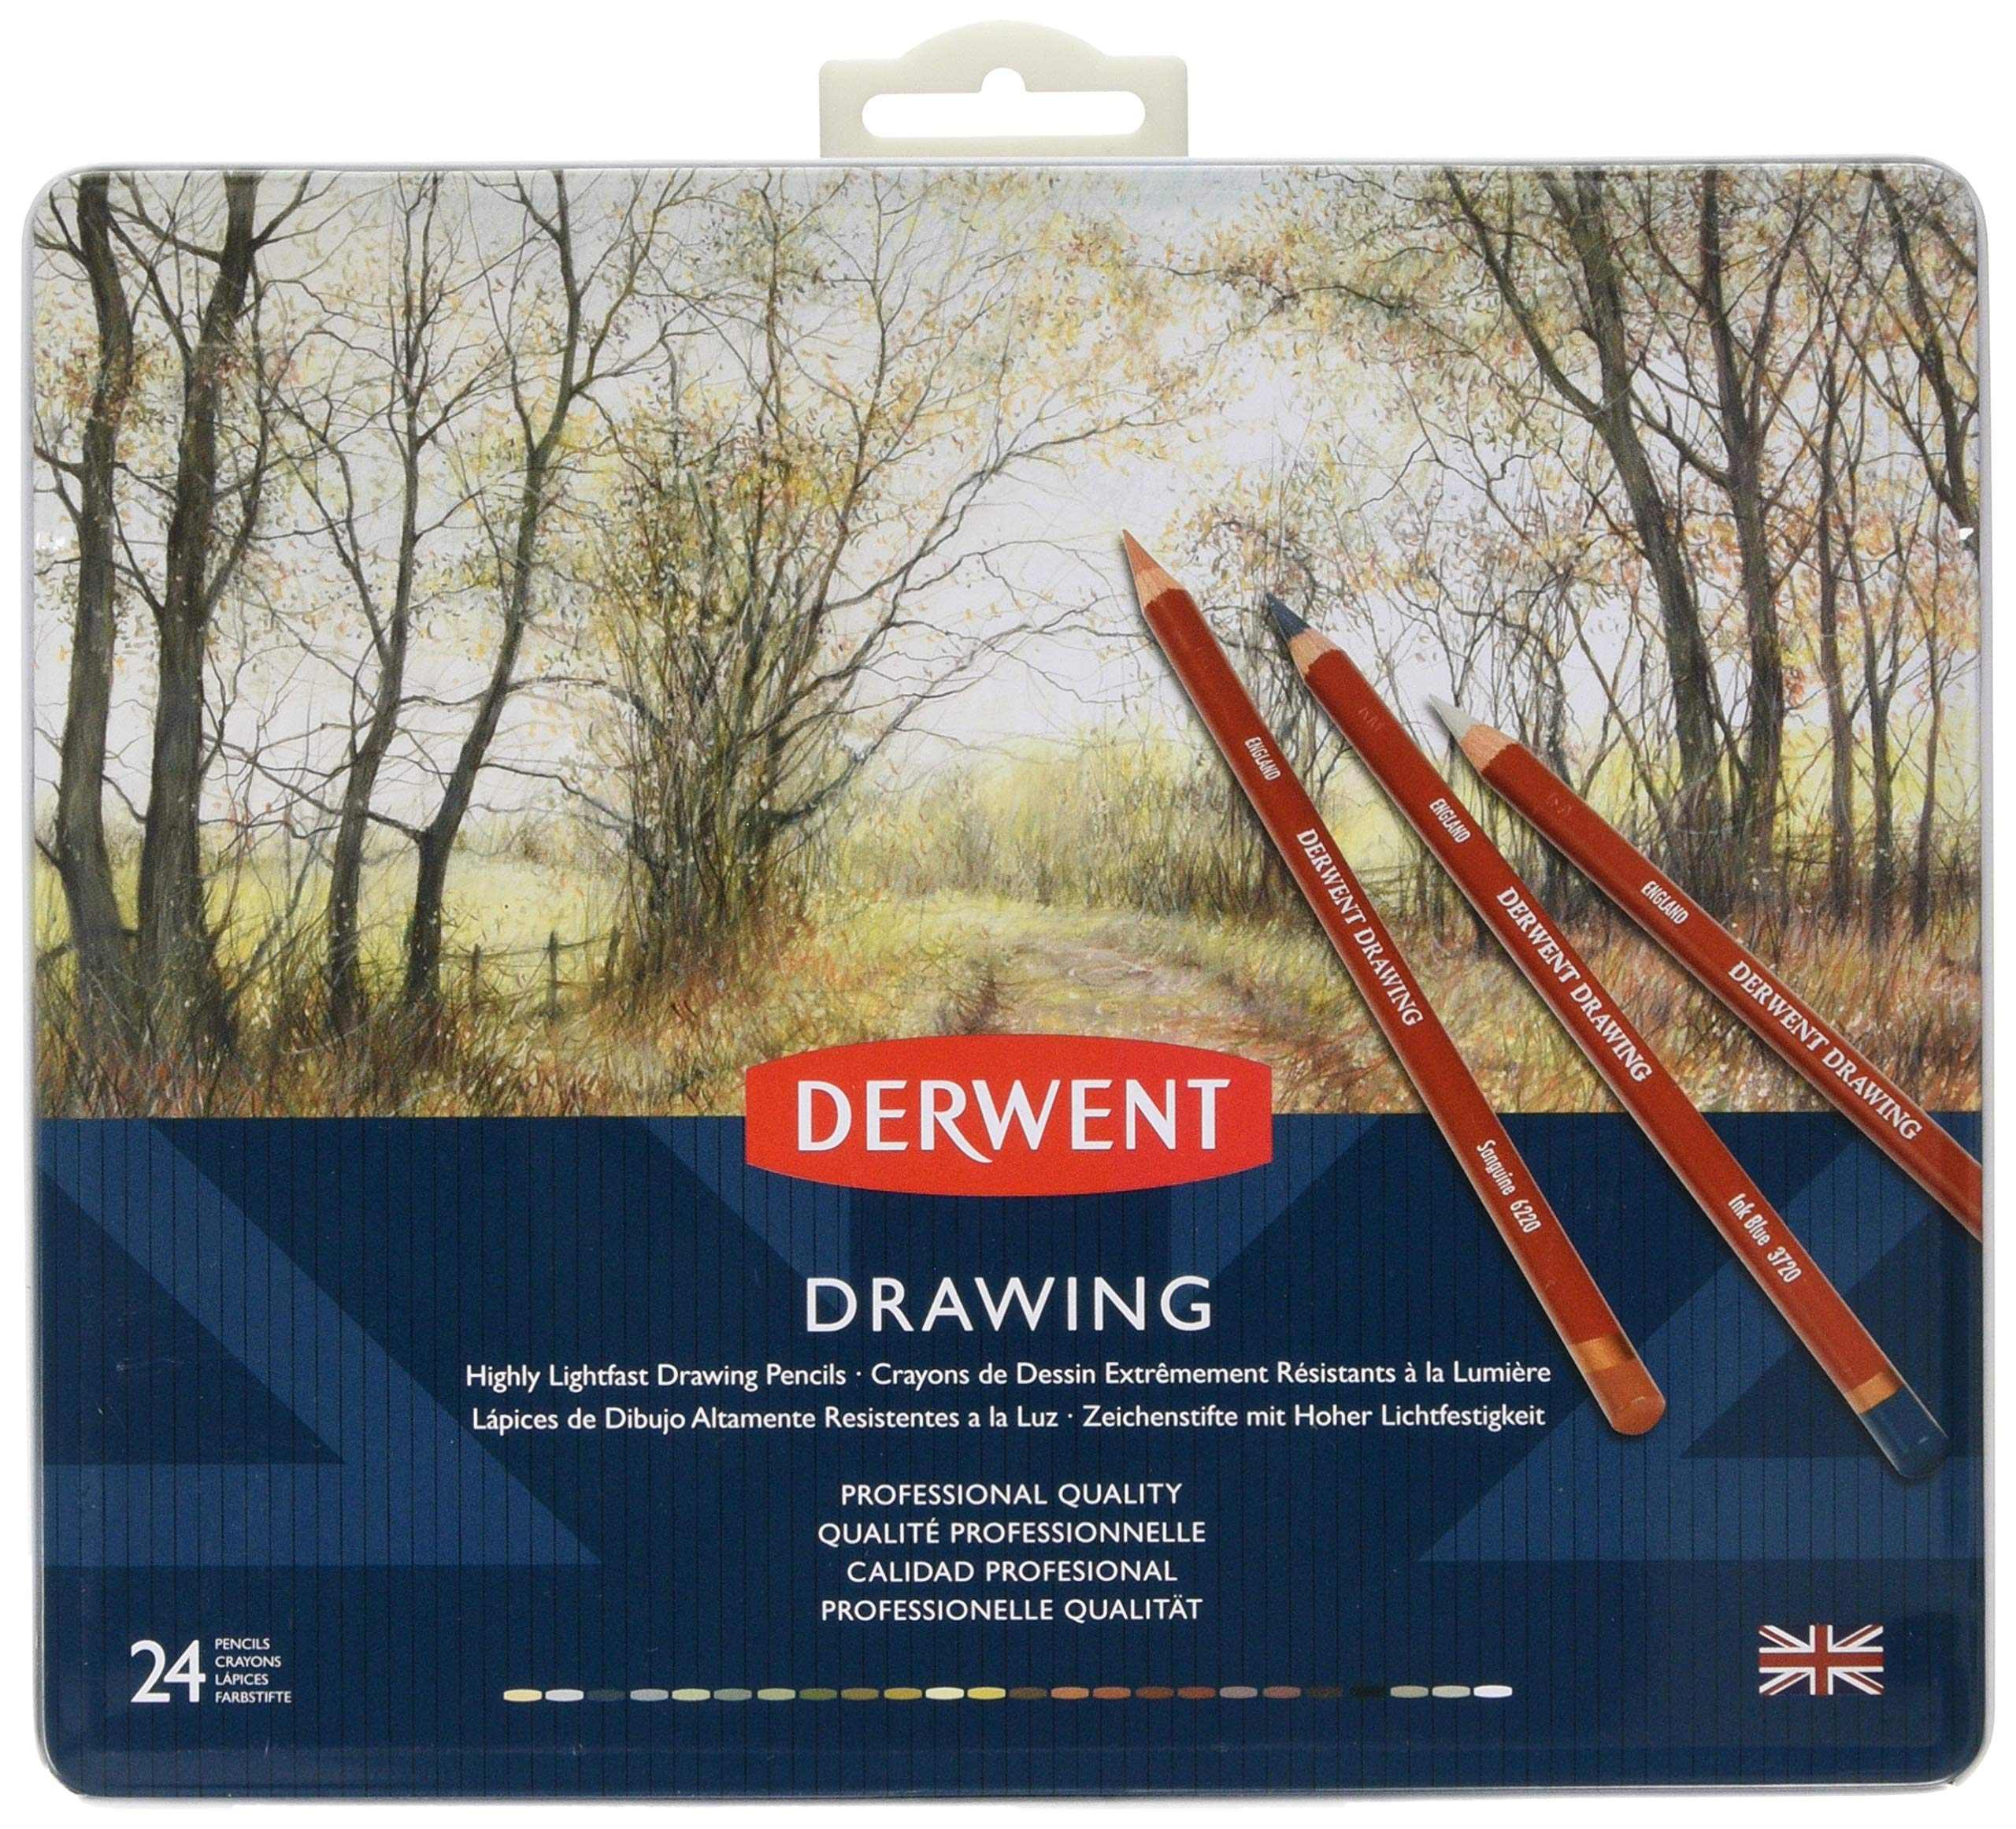 Derwent Colored Drawing Pencils, Metal Tin, 24 Count (0700672) by Derwent